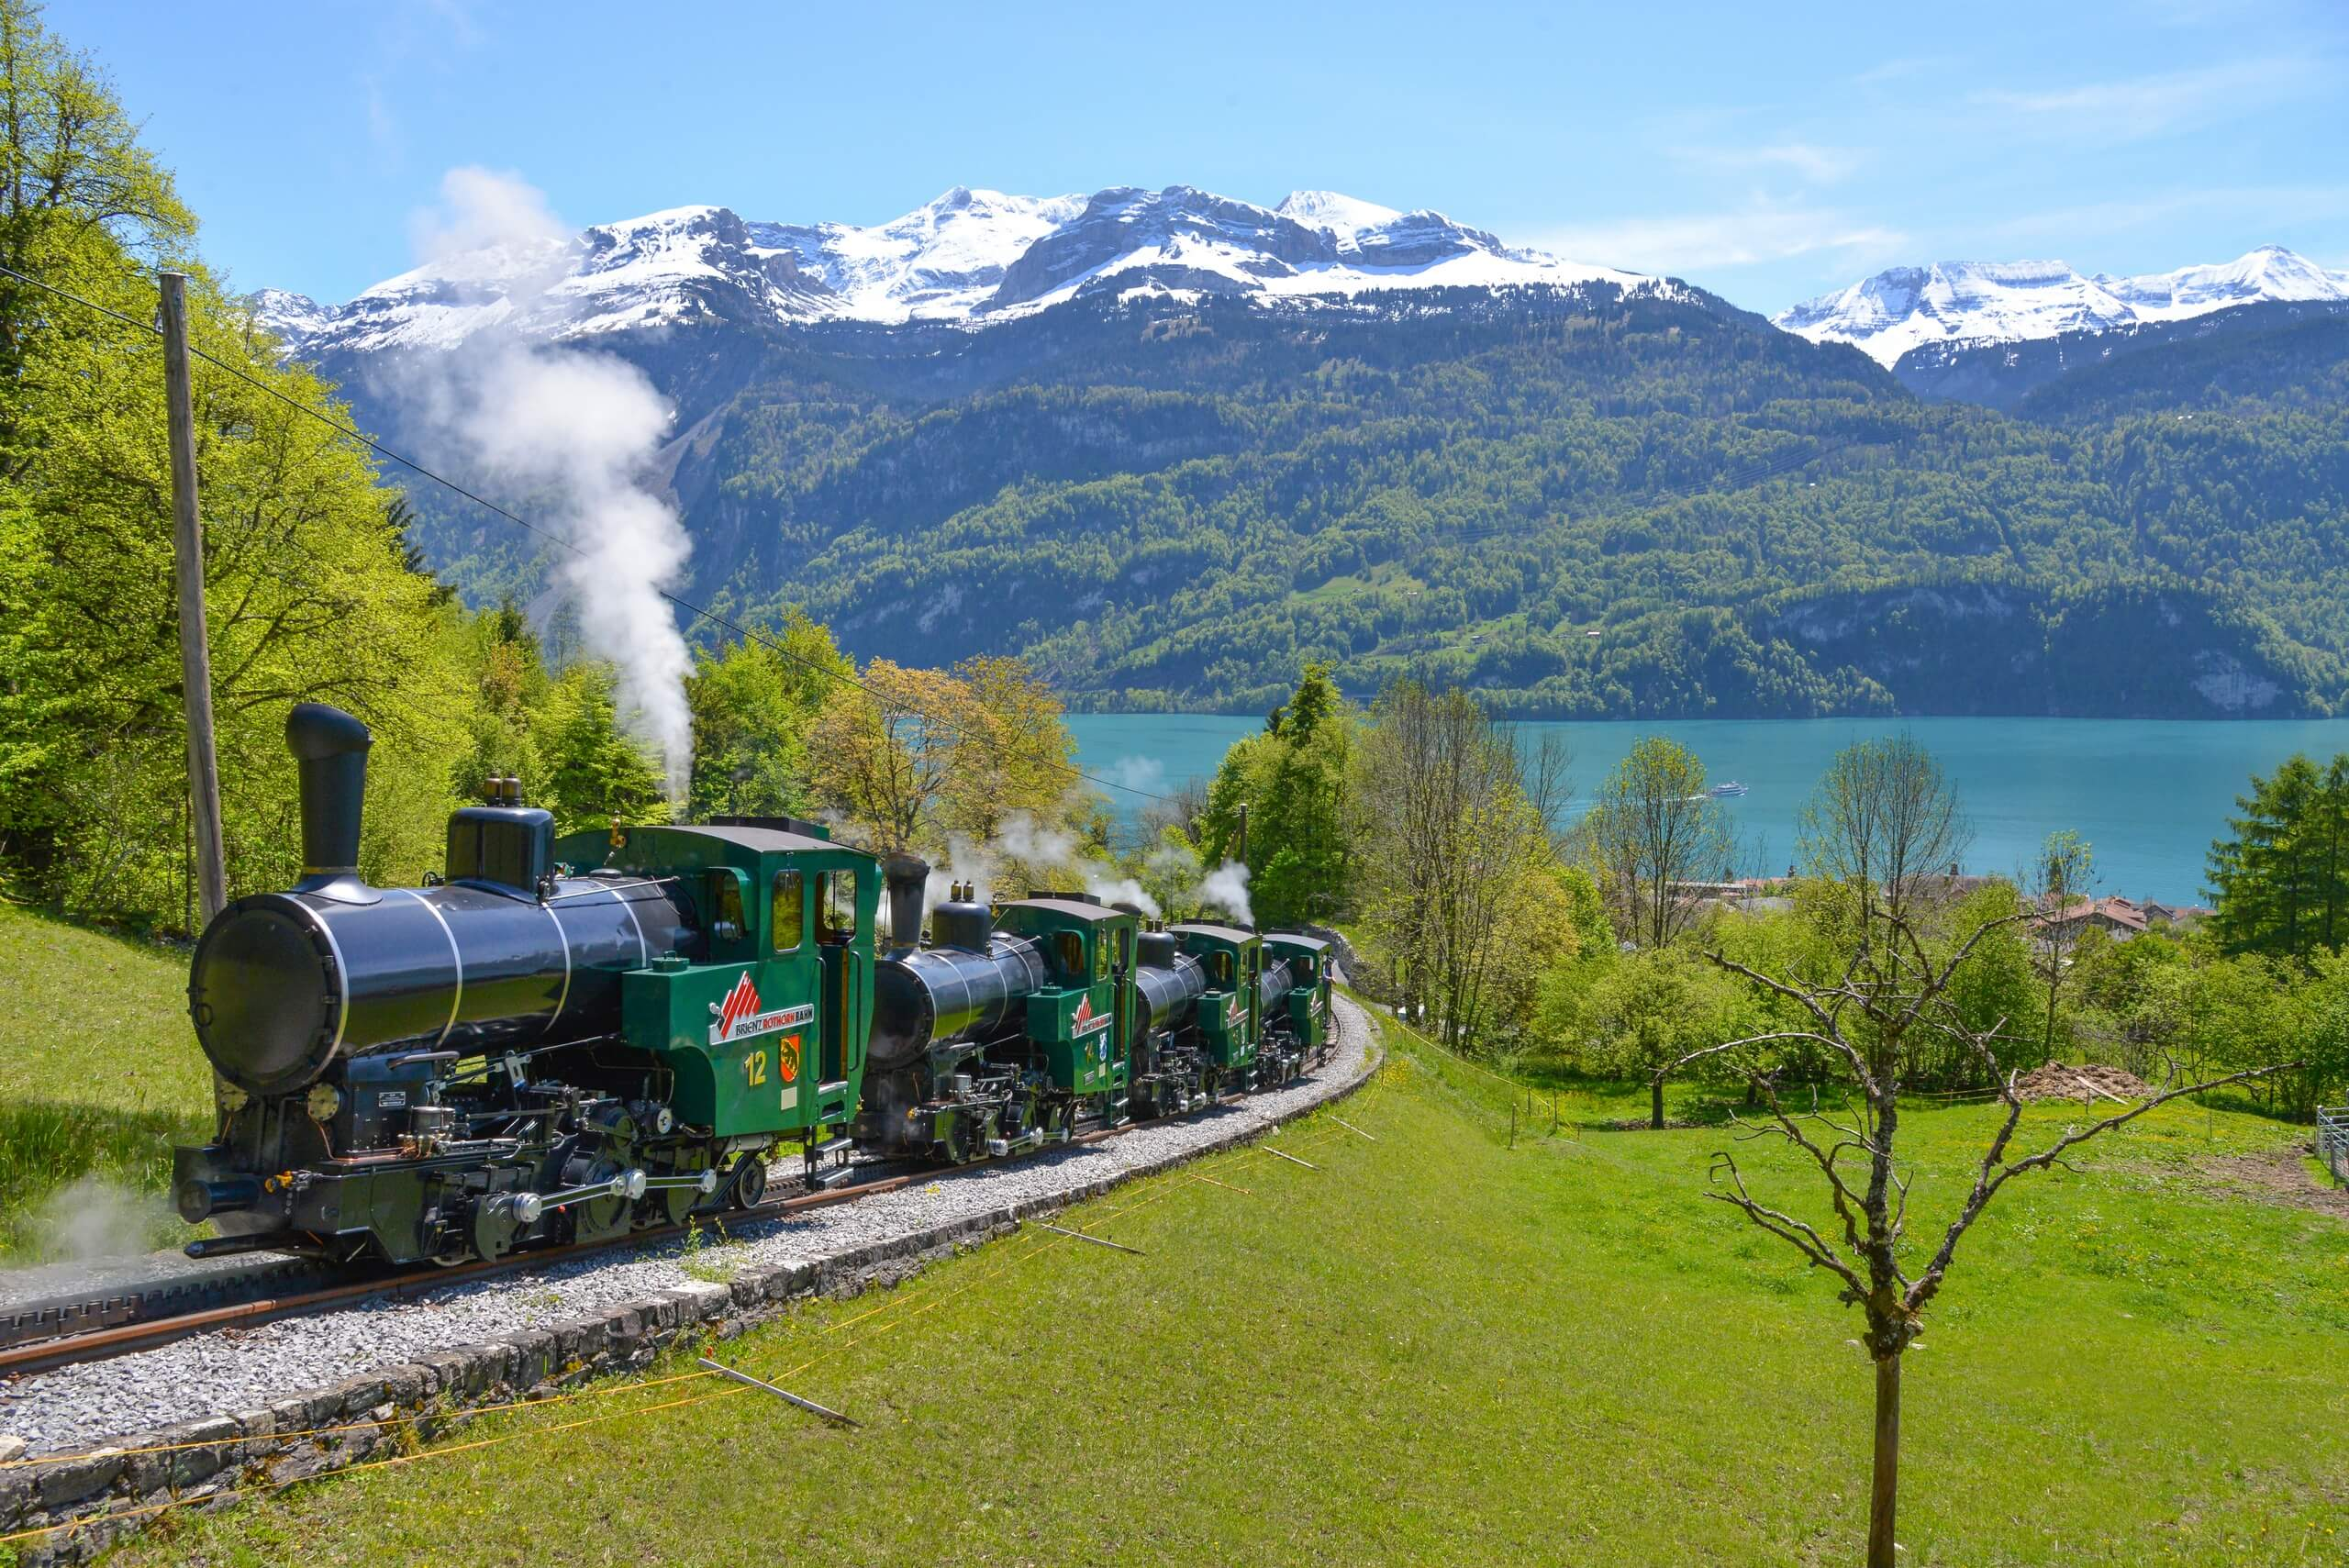 brienzer-rothornbahn-lokomotive-brienzersee-sommer-panorama